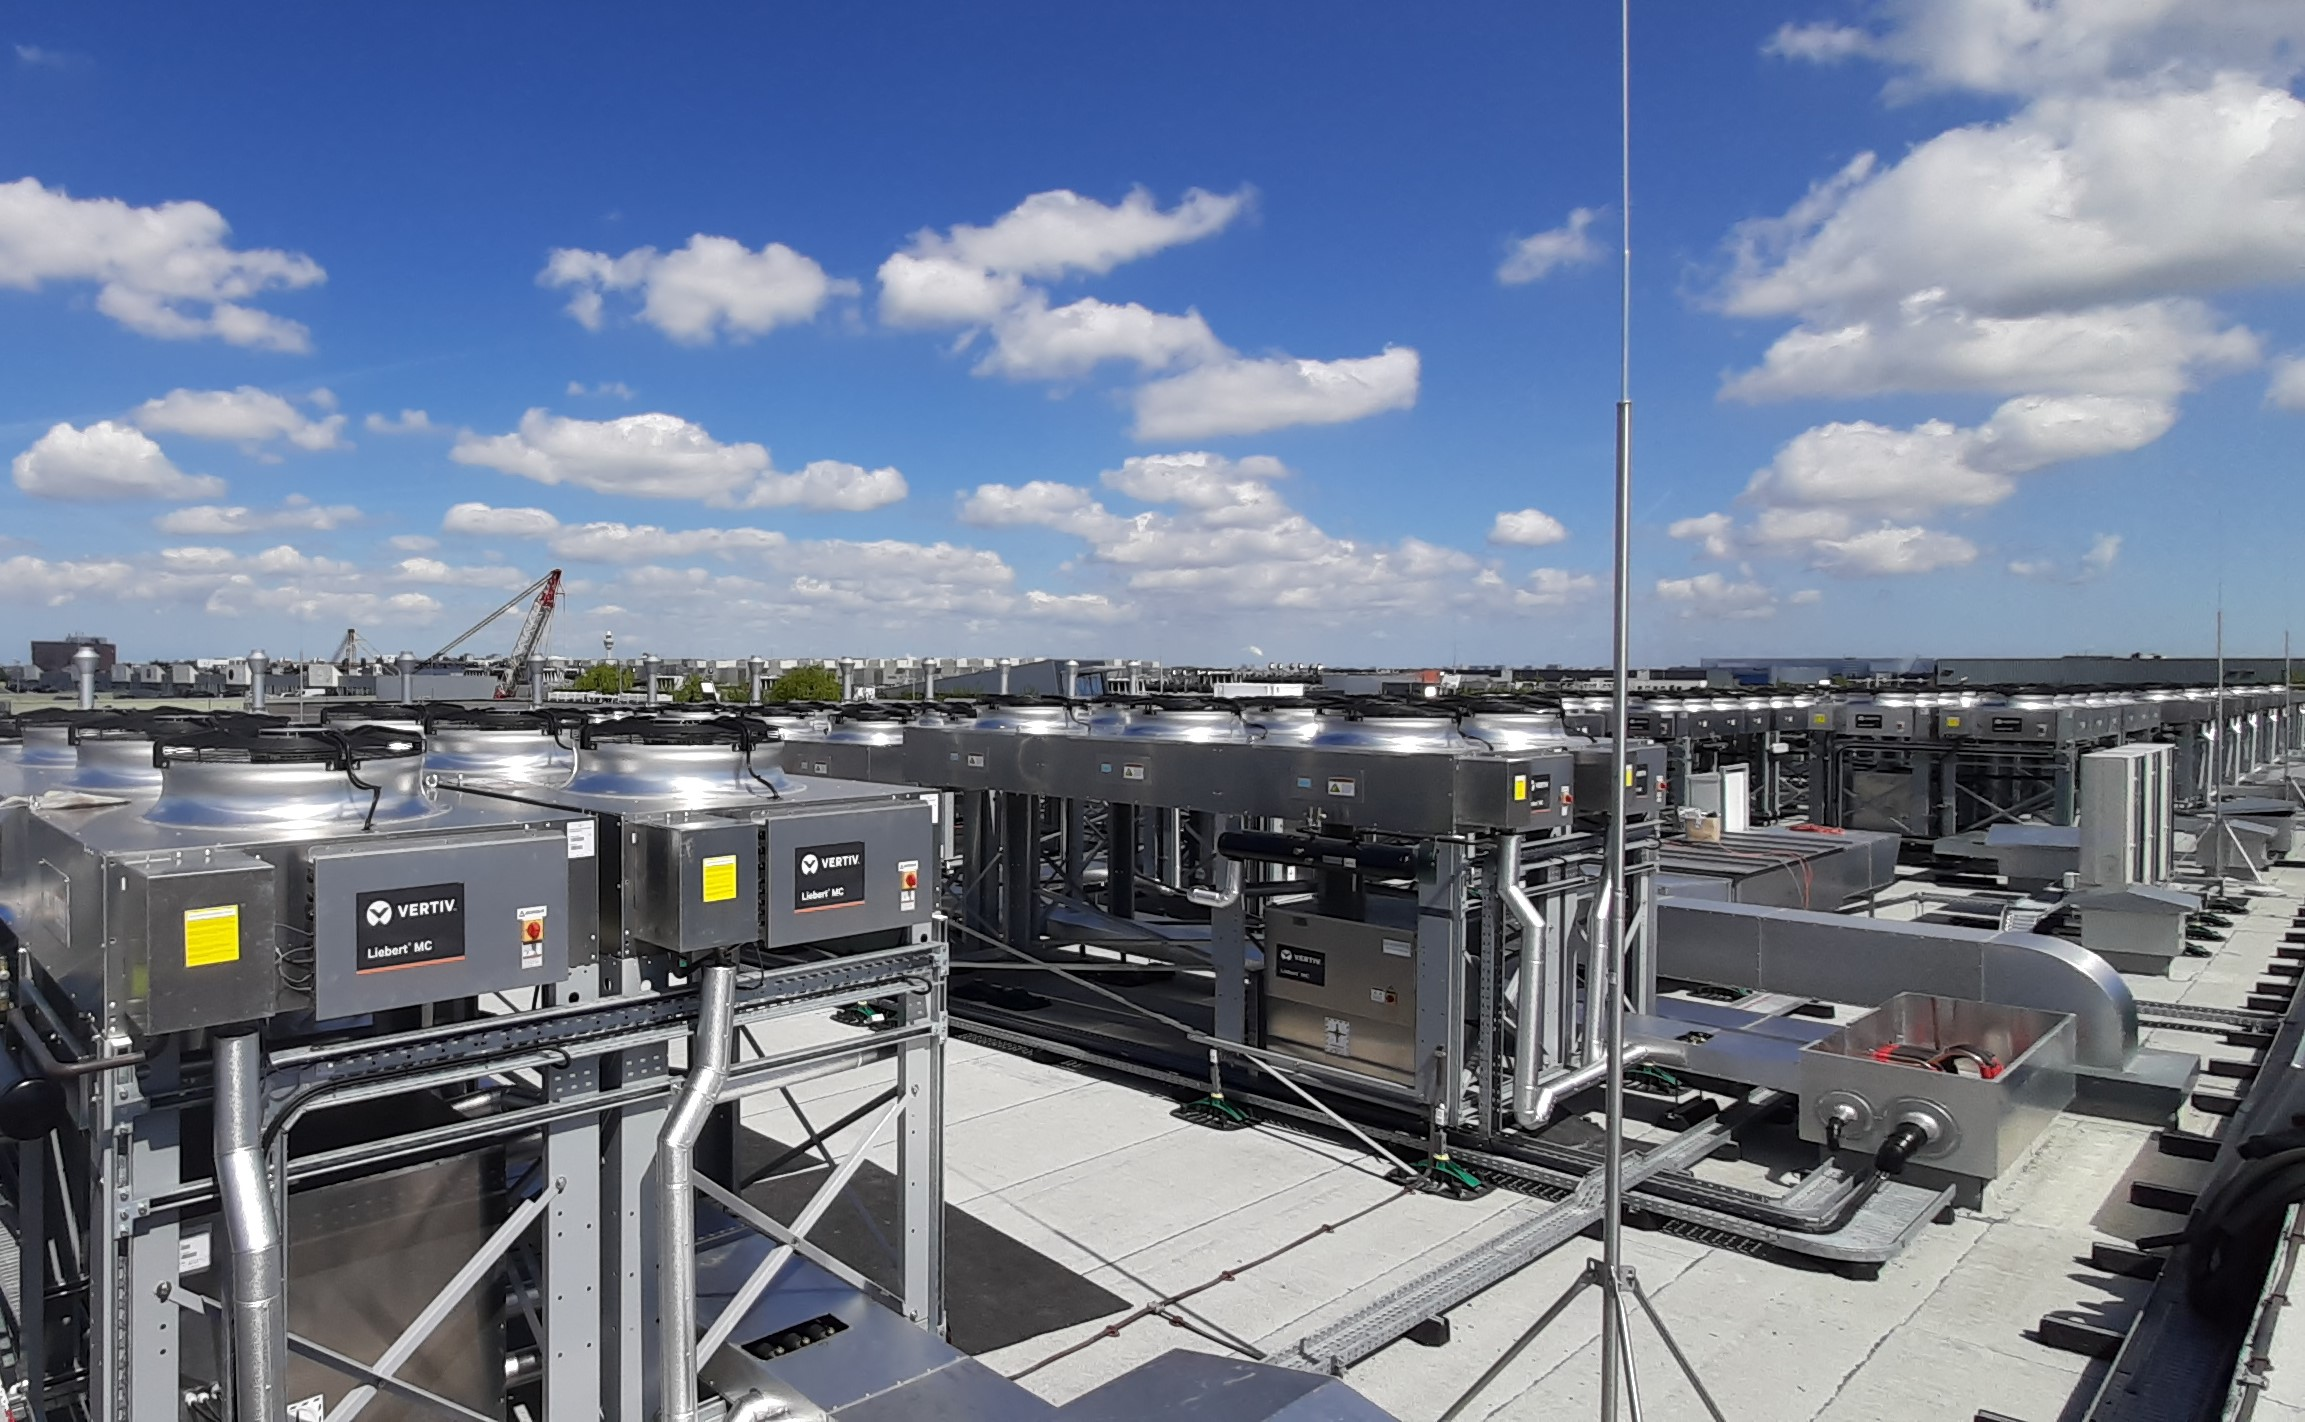 Turnkey Data Centre : 20MW Amsterdam